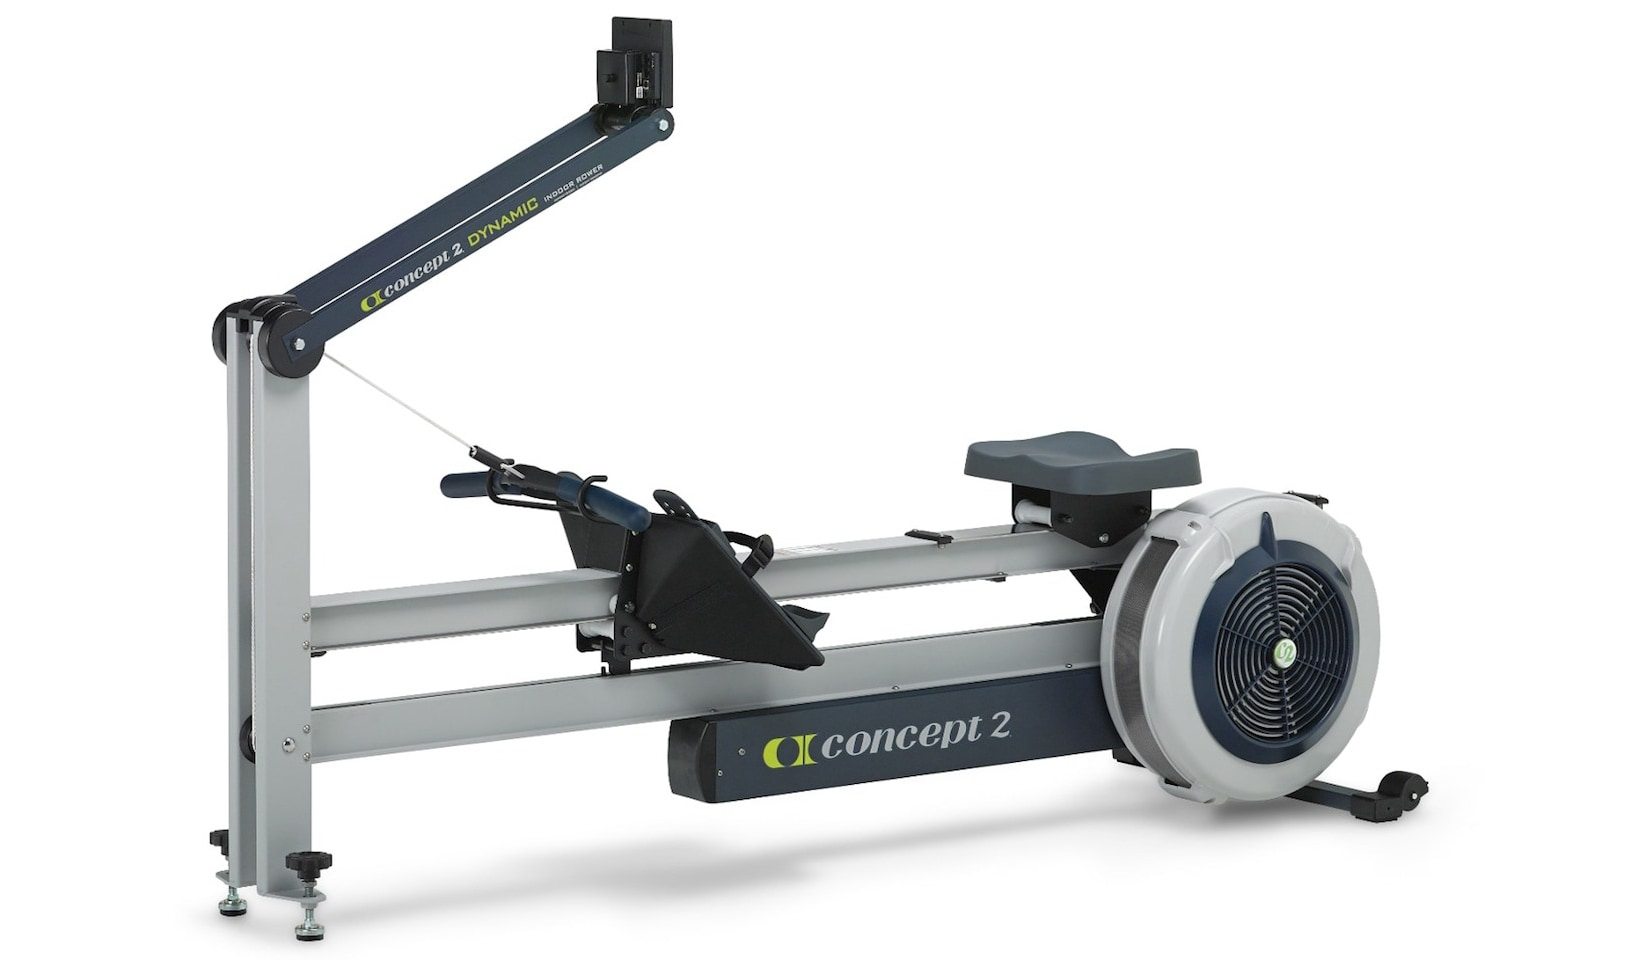 dynamic indoor rower for athletes teams closest rowing simulator. Black Bedroom Furniture Sets. Home Design Ideas